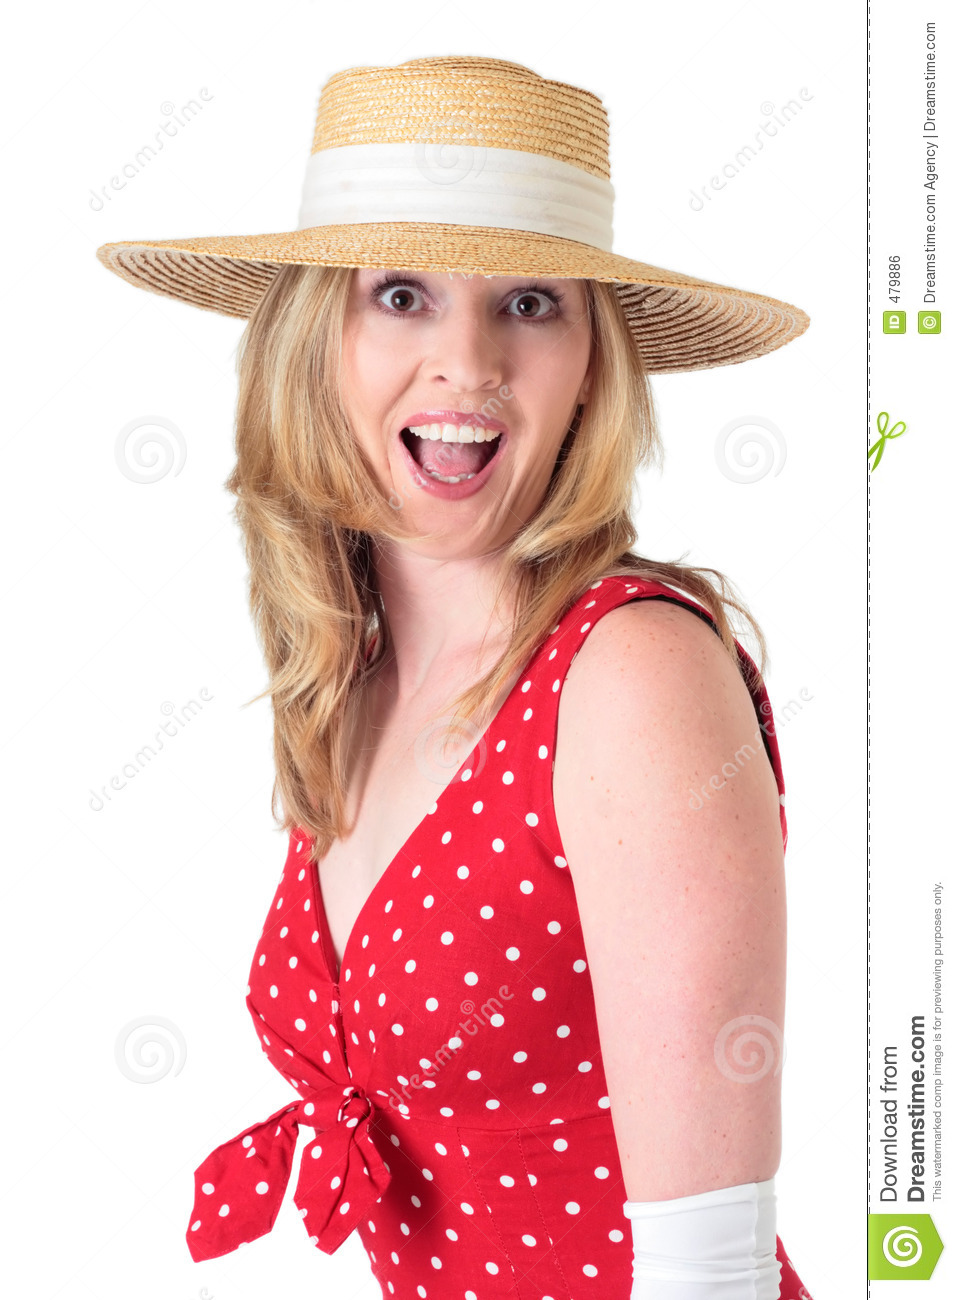 stock images of ` Woman in fifties fashion with surprised expression